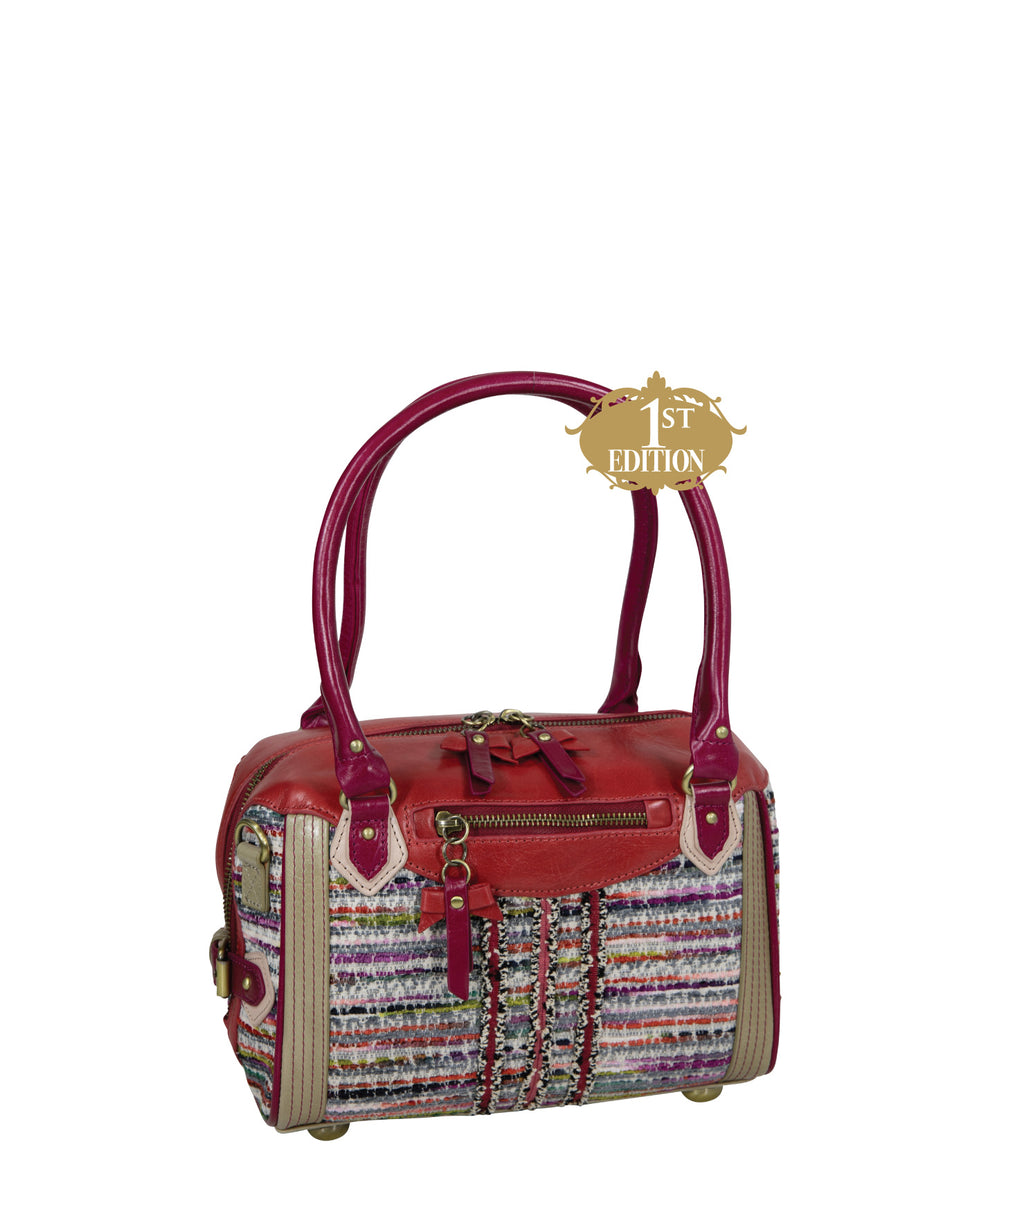 ISADORA MINI Bowler Bag - Gypsy - 1st Edition